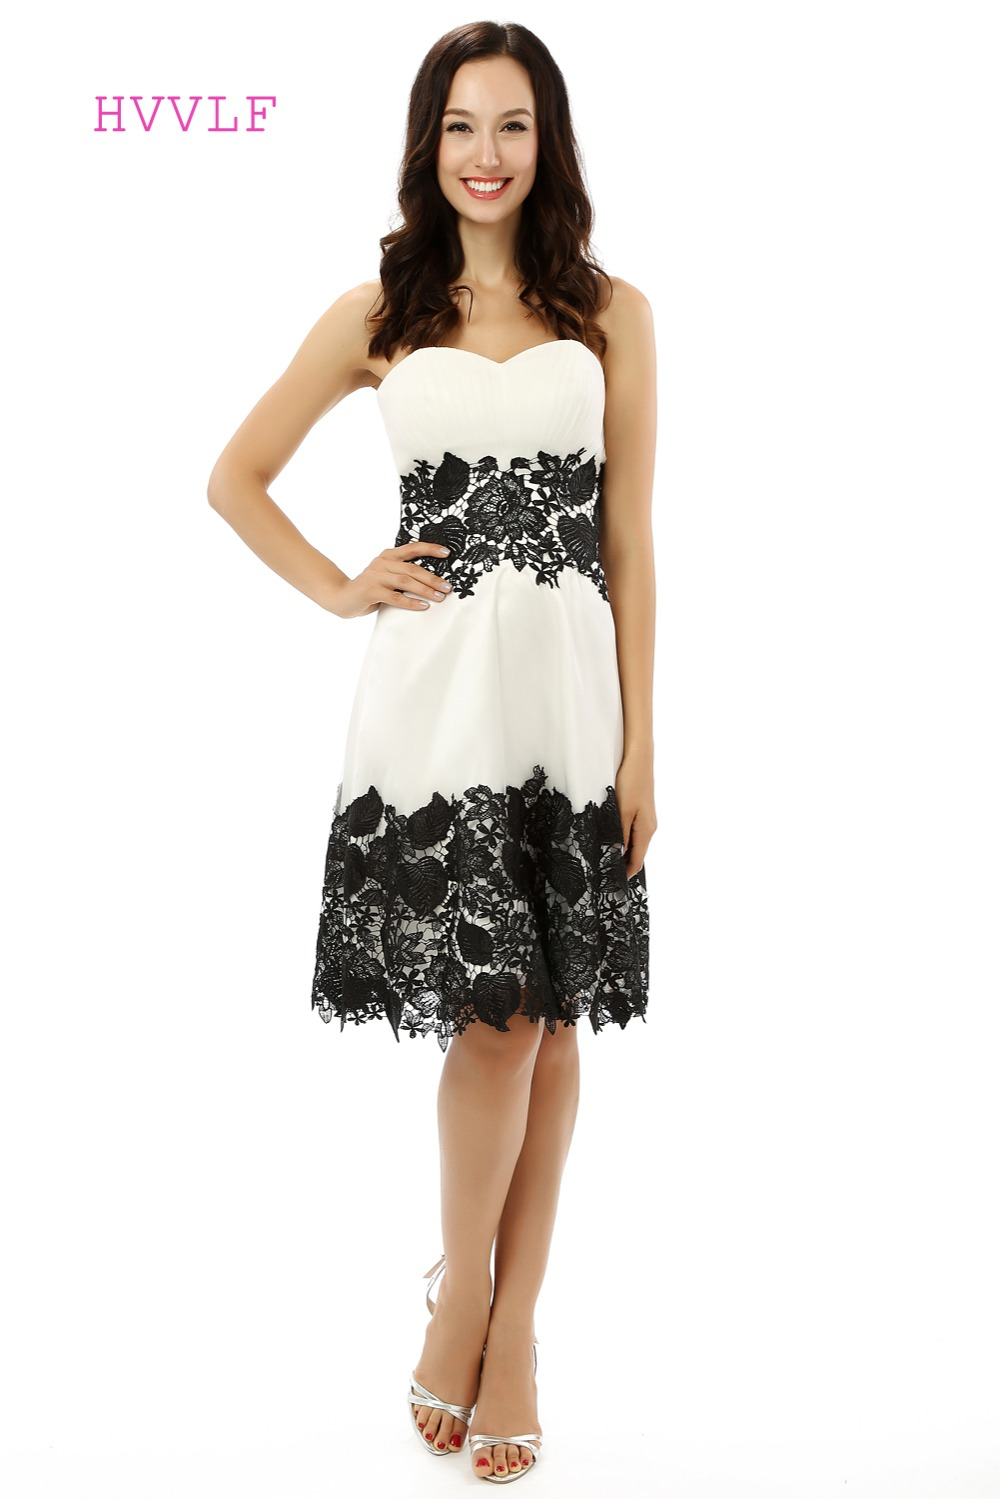 8a3f0e4f10e White Black Homecoming Dresses A-line Sweetheart Satin Lace Knee Length  Sparkly Sweet 16 Cocktail Dresses 2019